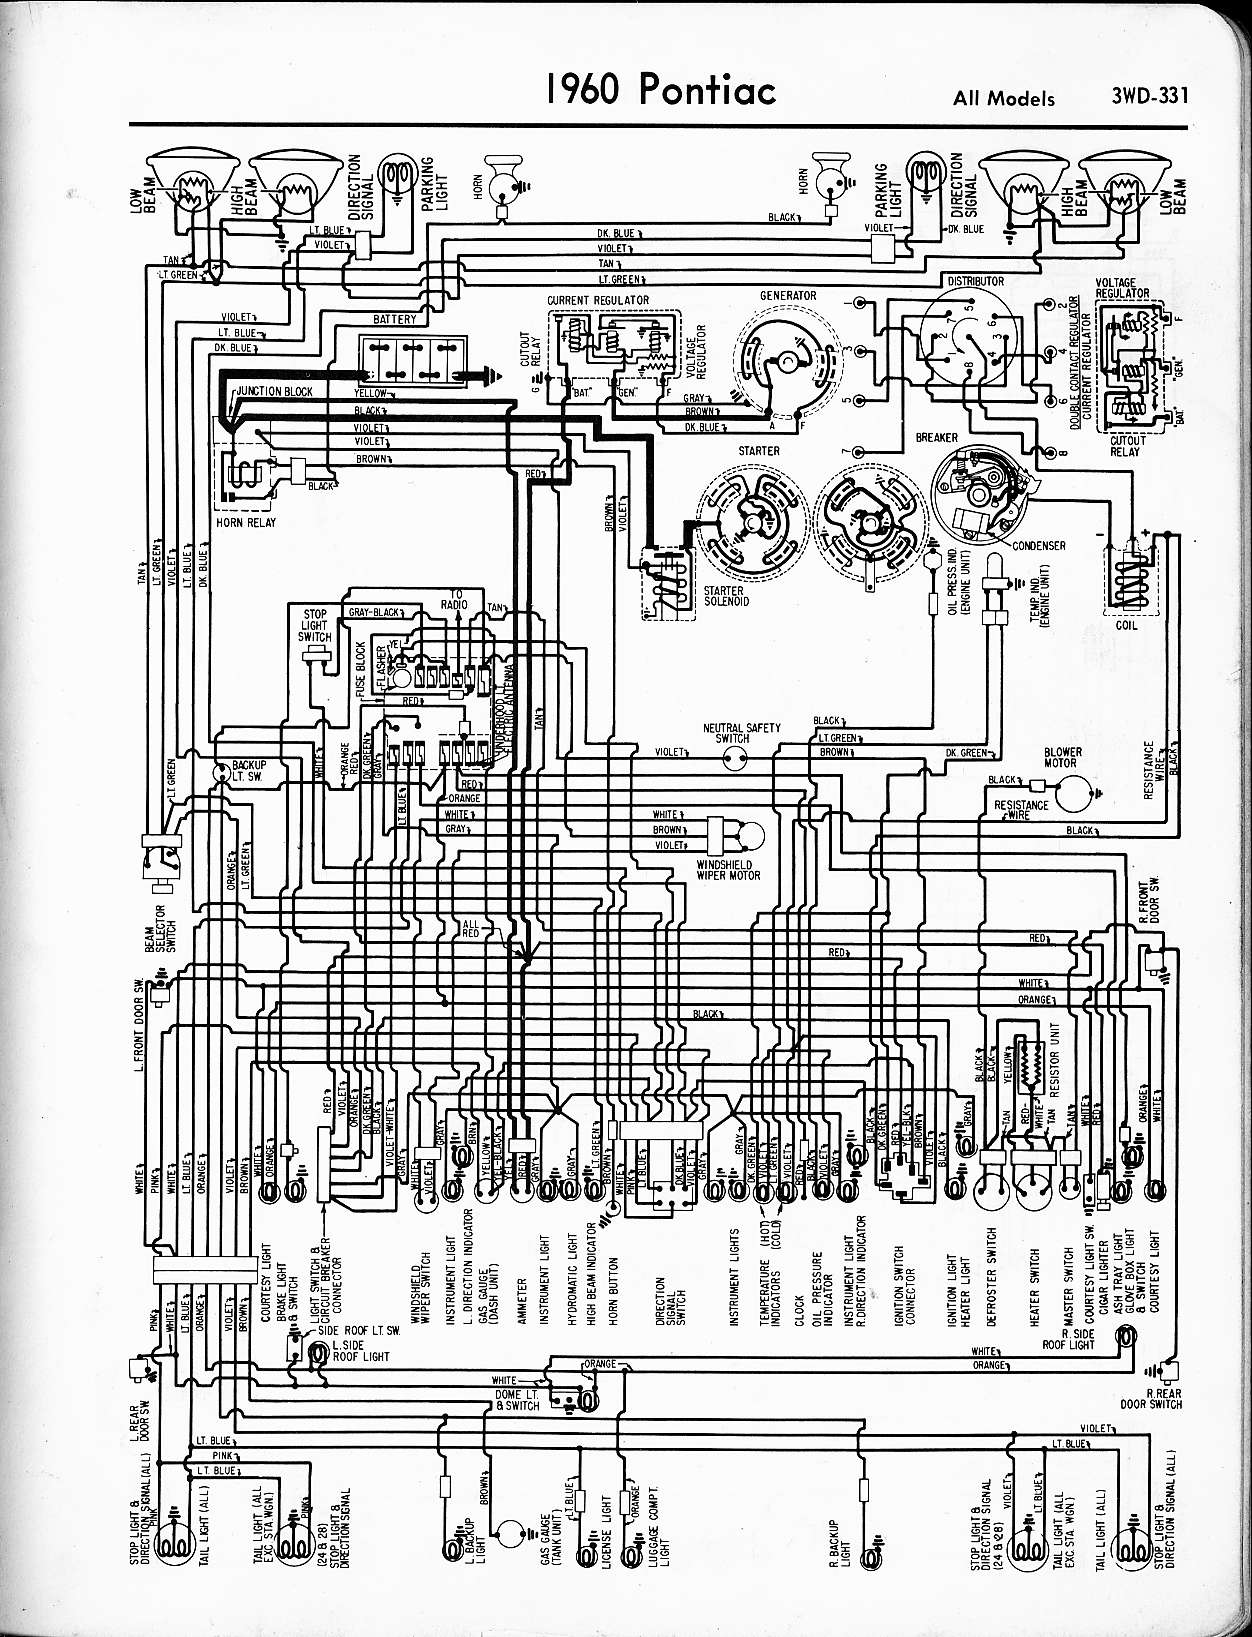 07 Pontiac G5 Wiring Diagram Library 2007 Schematic Wallace Racing Diagrams Rh Wallaceracing Com For